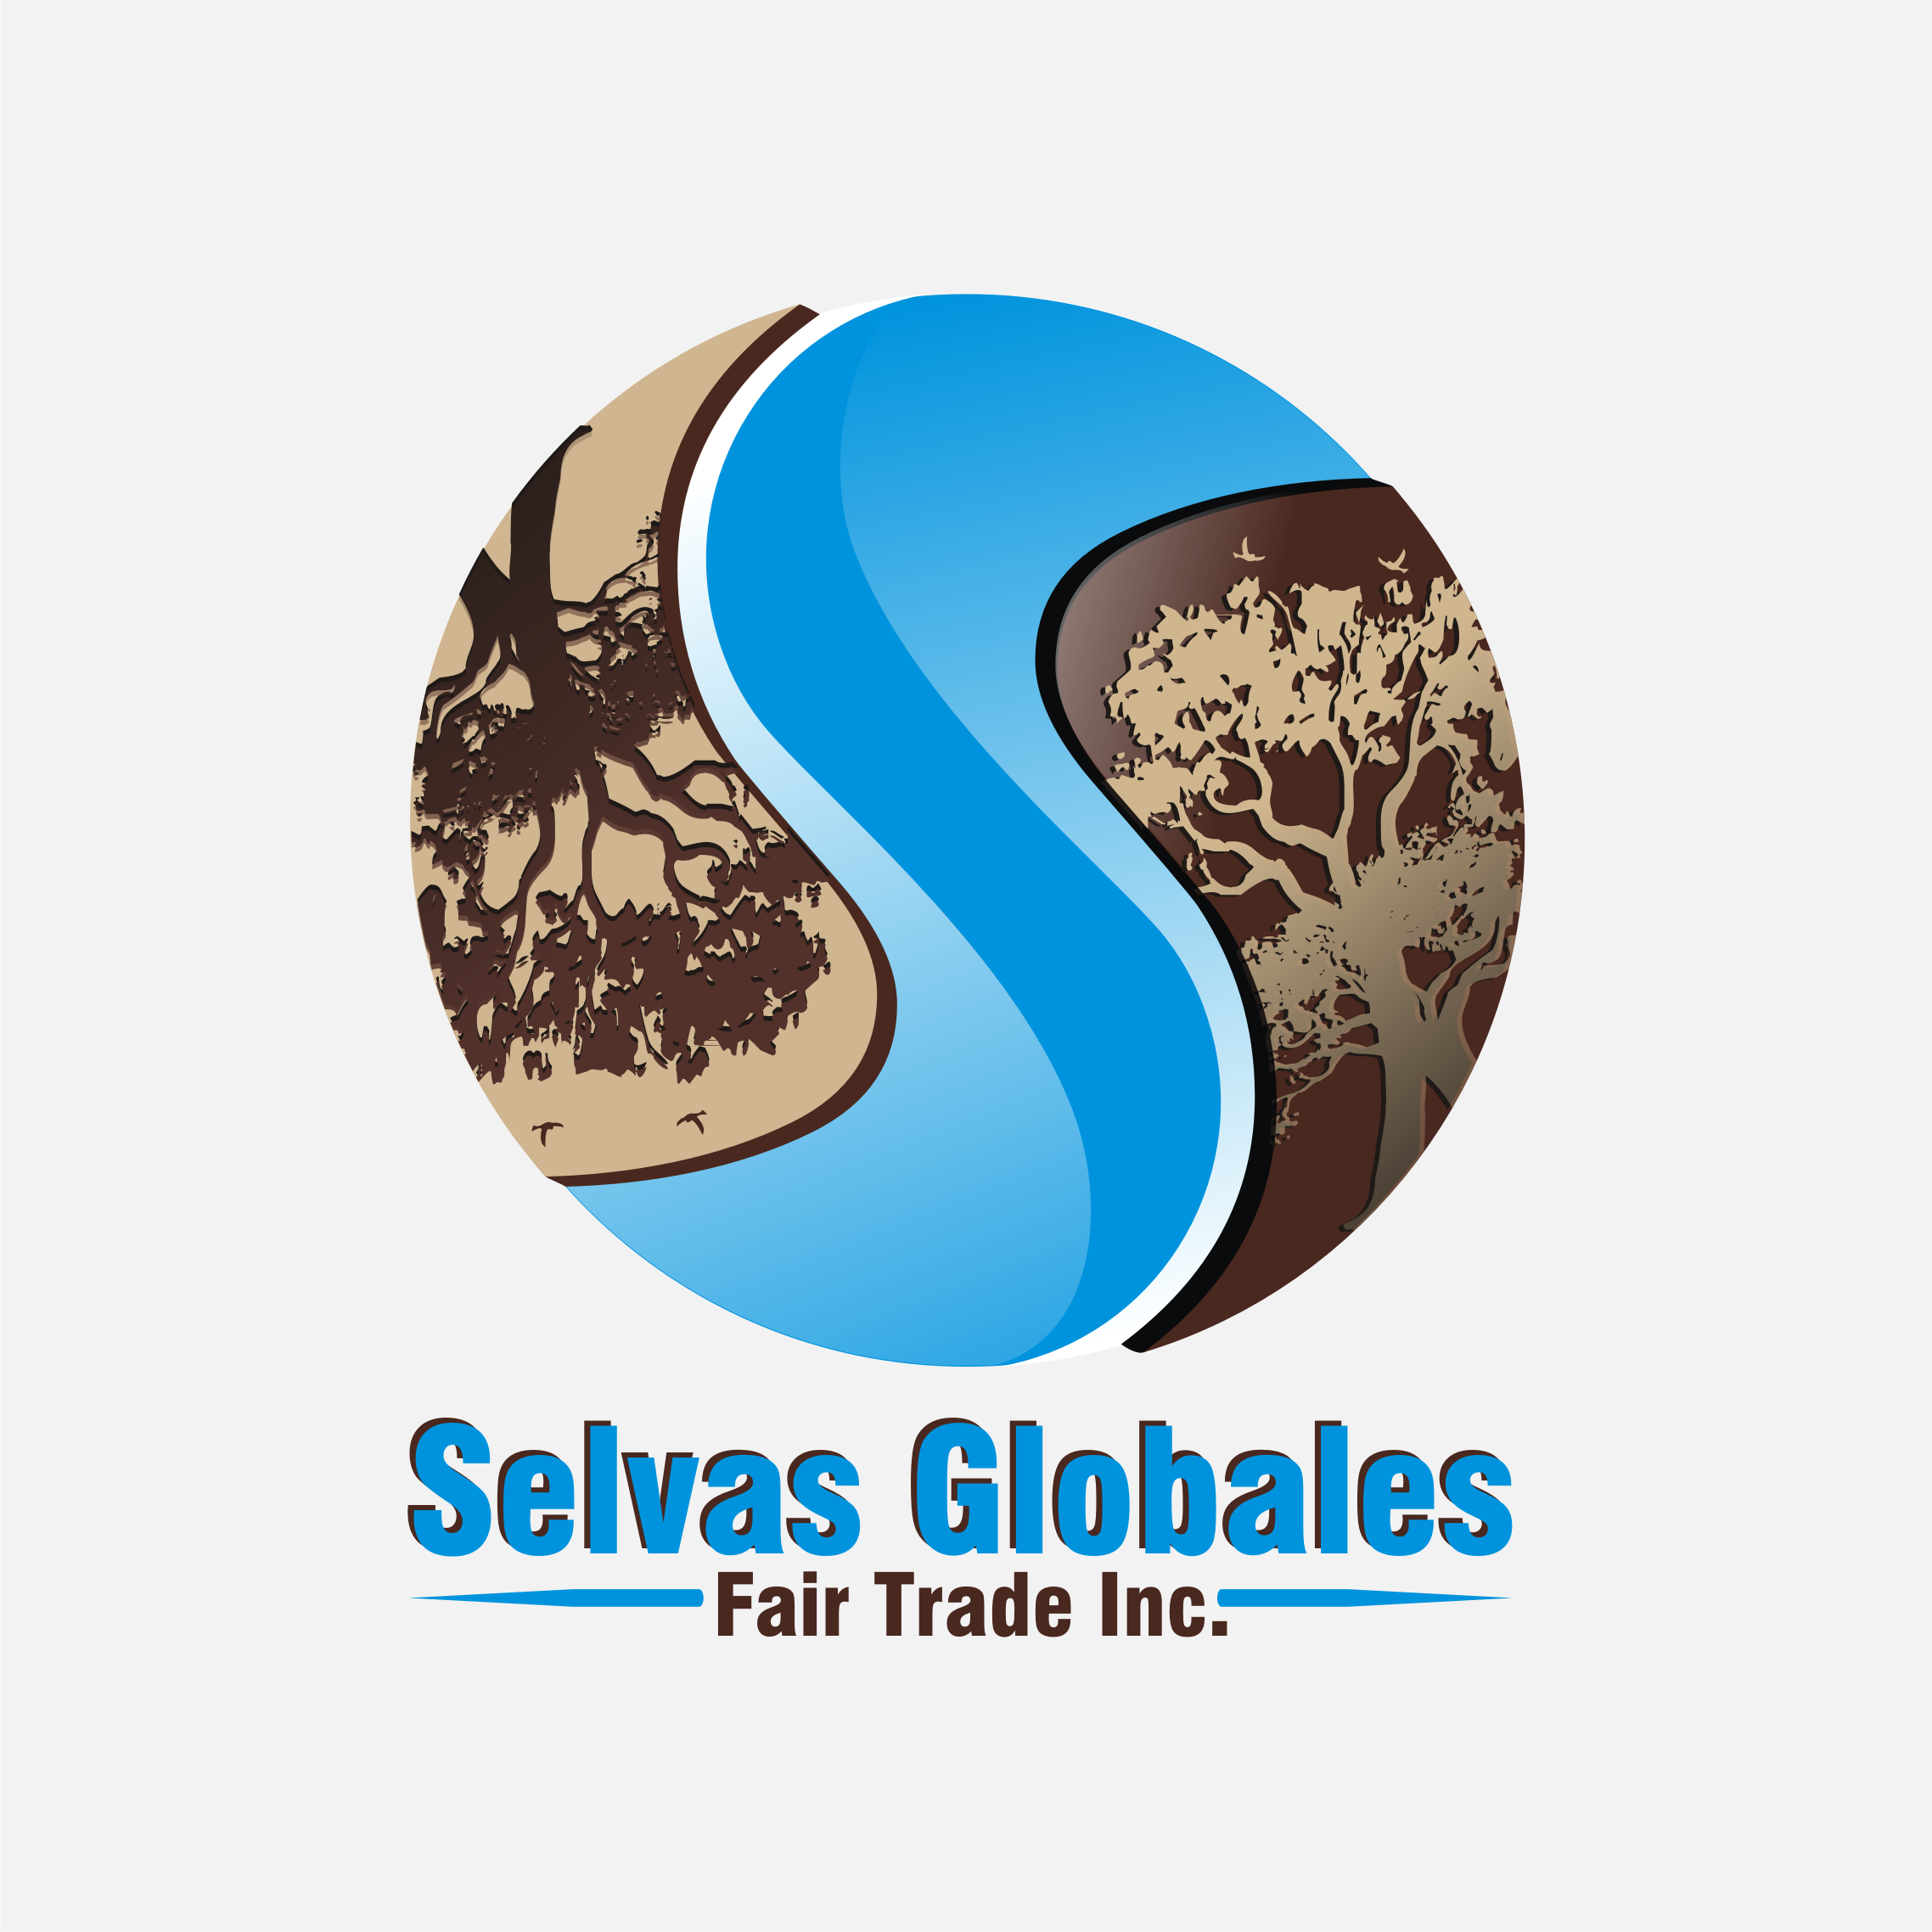 Logo Design by Private User - Entry No. 104 in the Logo Design Contest Captivating Logo Design for Selvas Globales Fair Trade Inc..